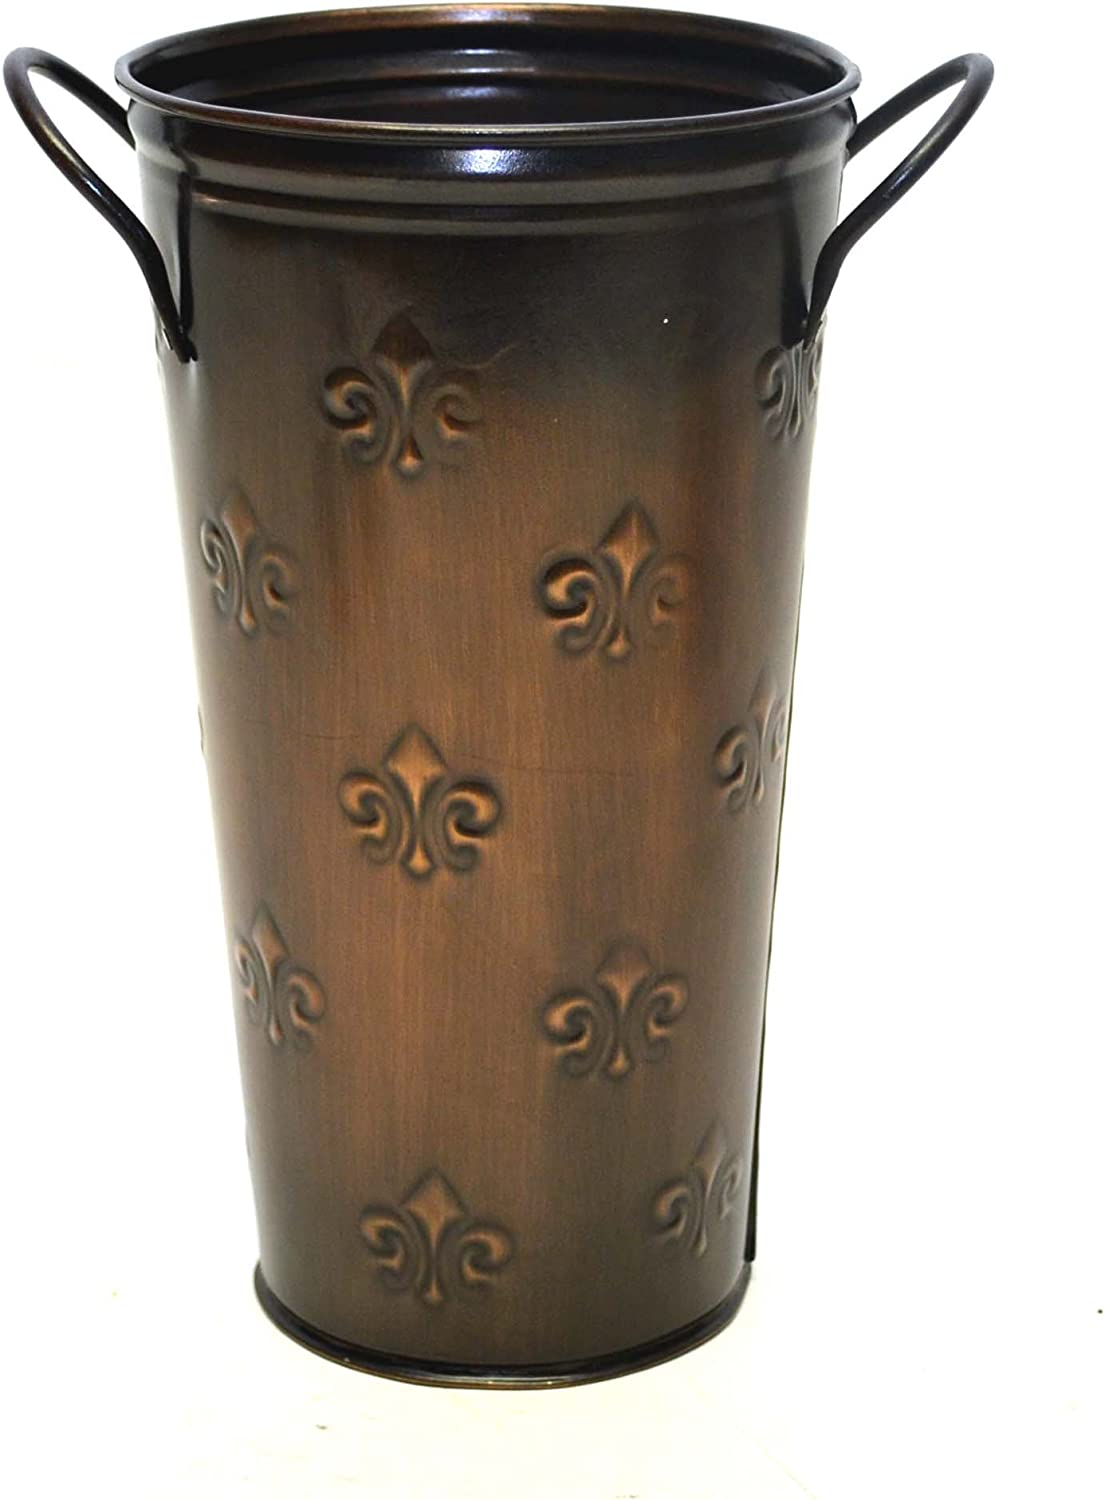 French Flower Bucket, Copperized Tin, Fleur De Lis Pattern-10 Inches High X 5.5 Inches Diameter